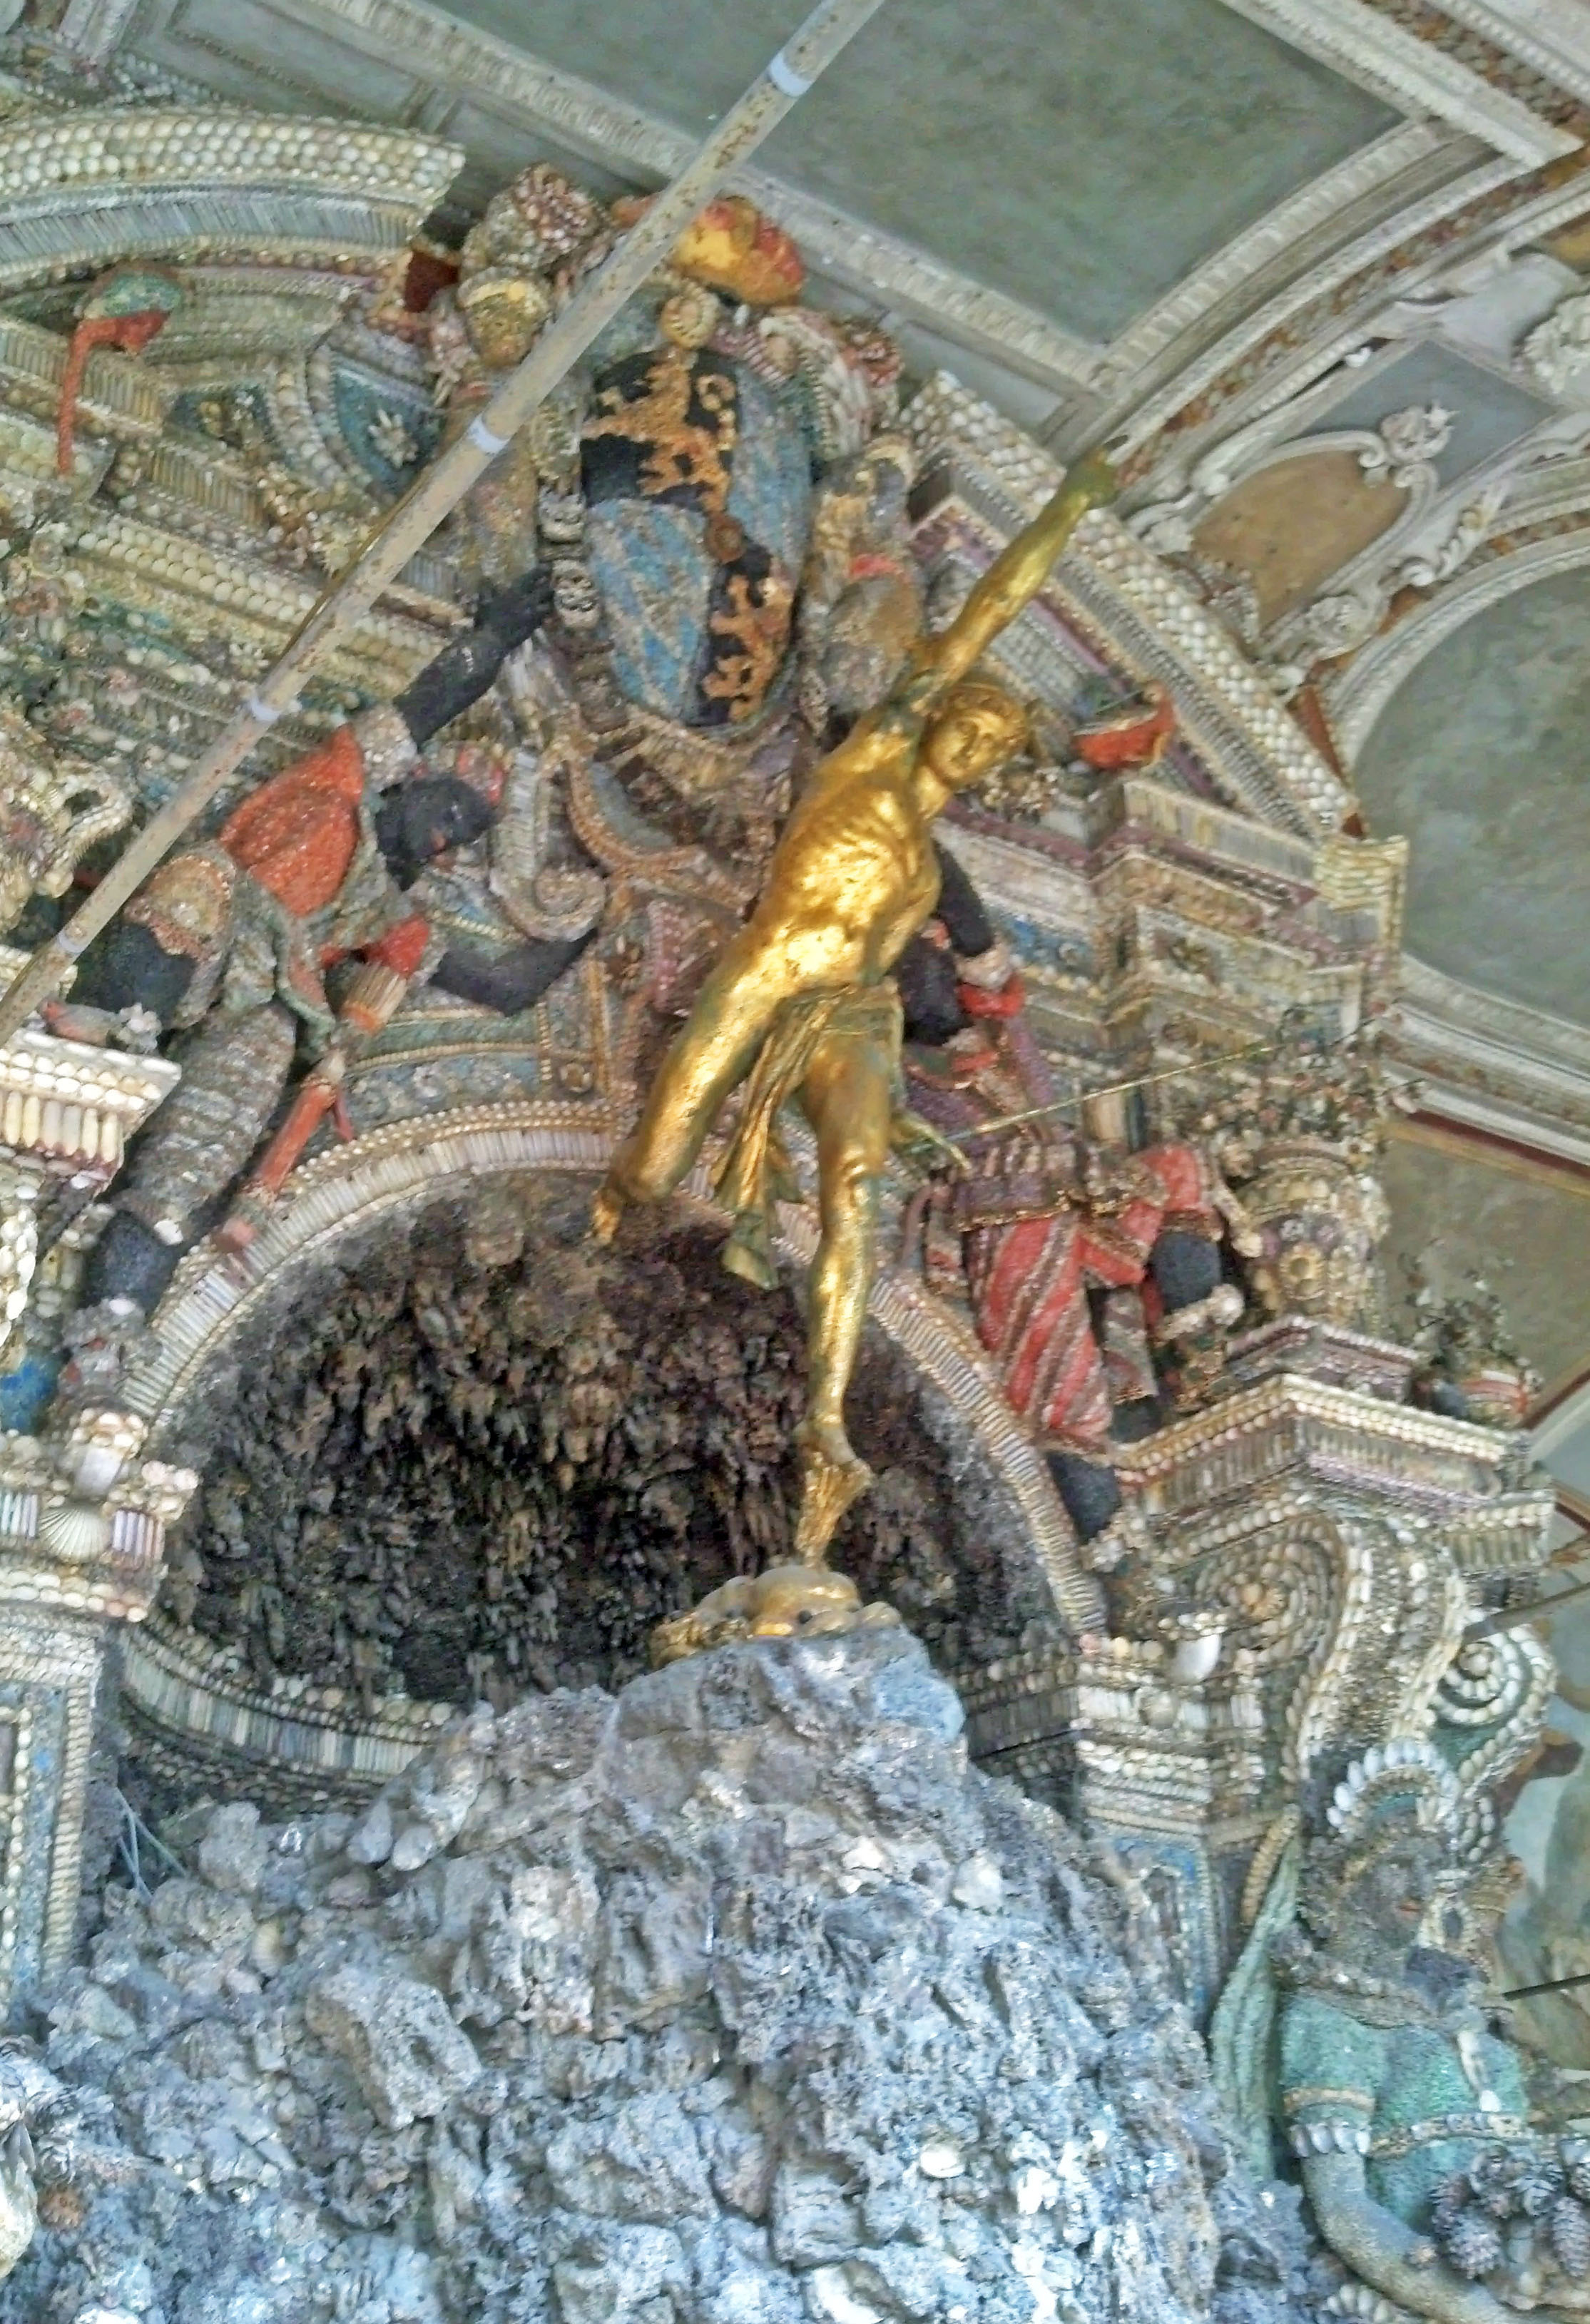 A golden statue of Mercury in the Shell Grotto.